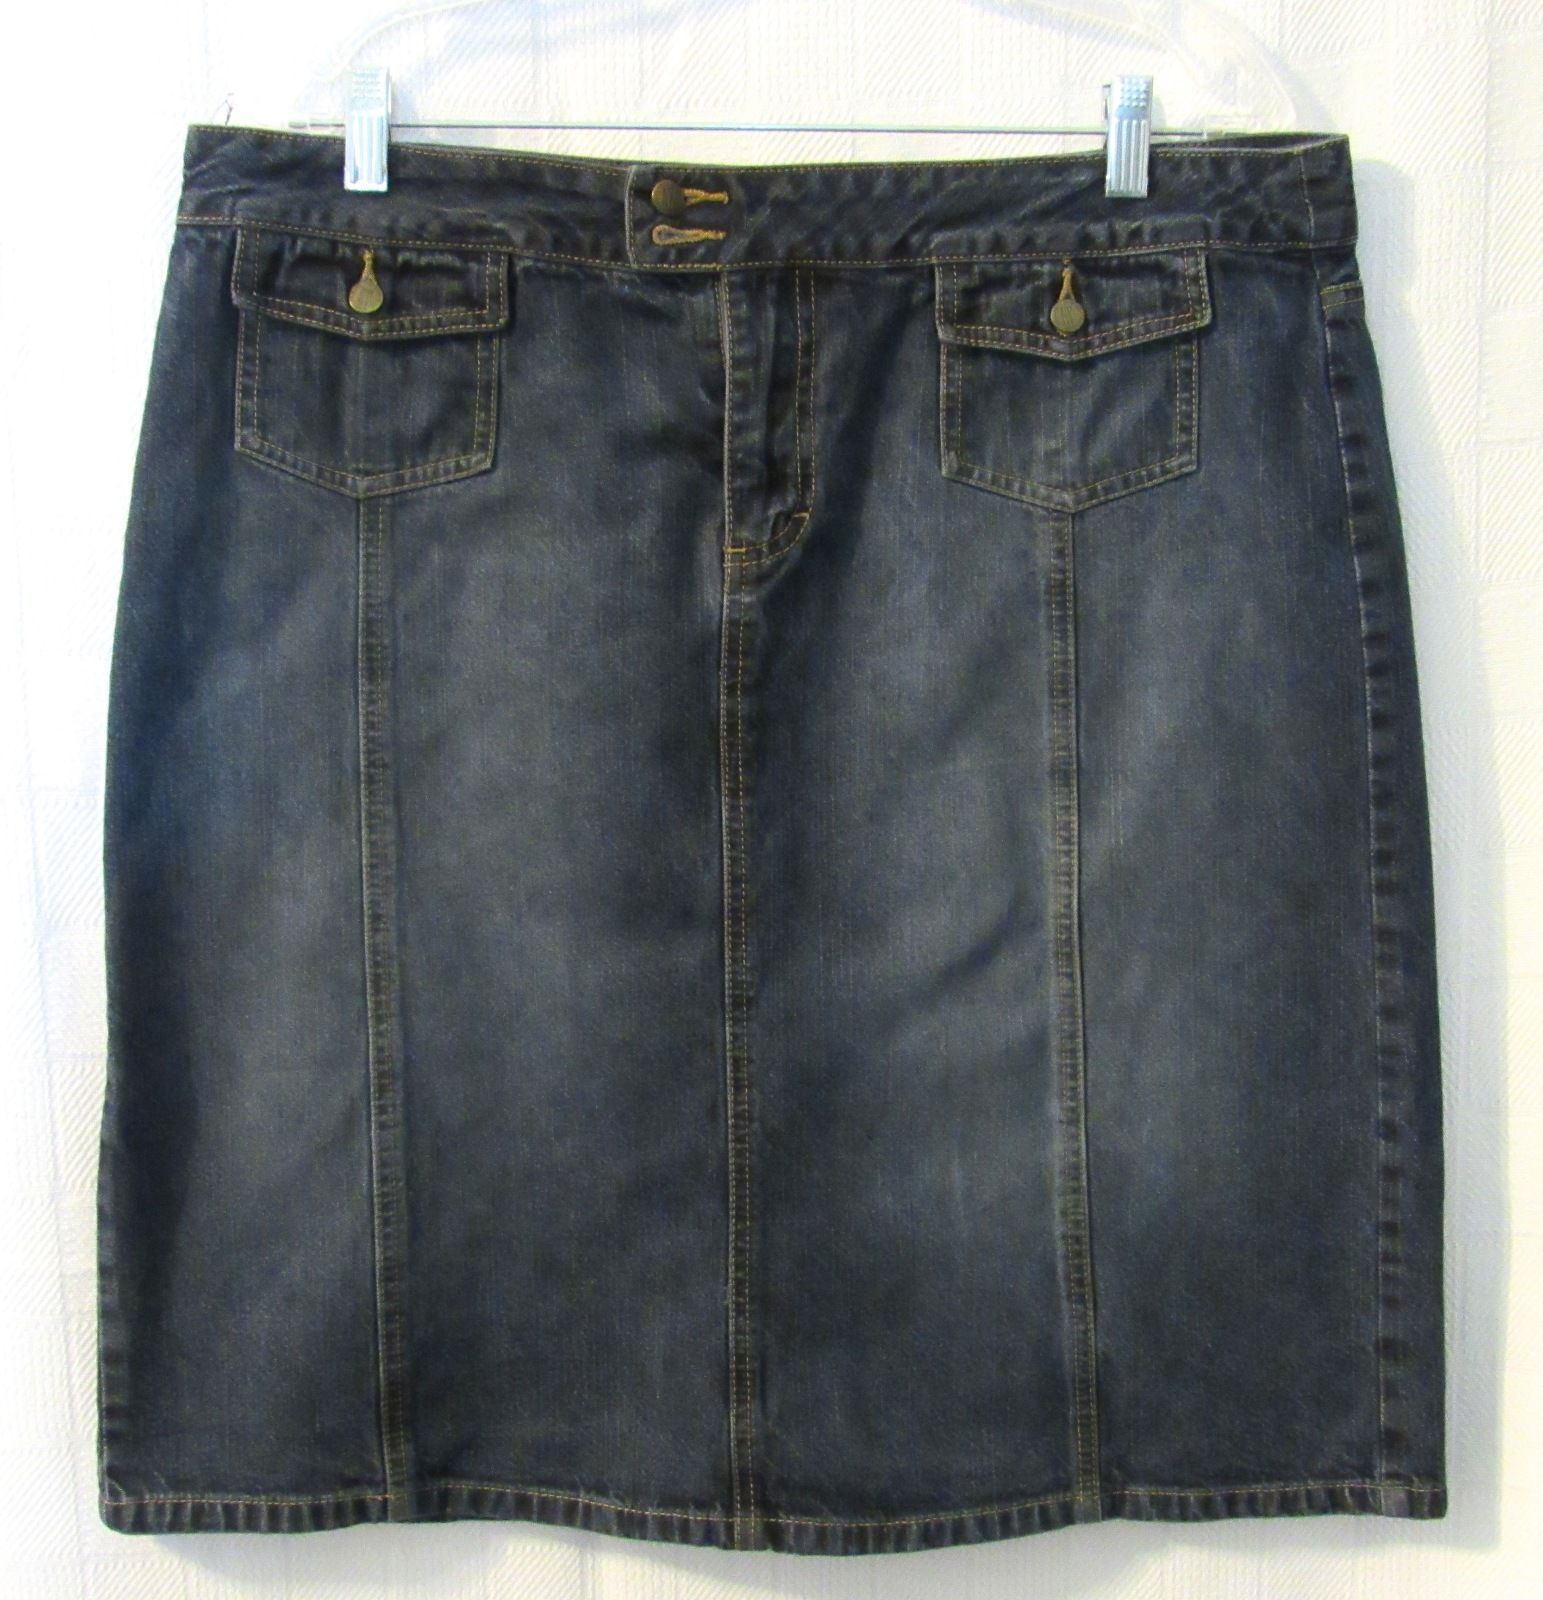 NY & Co Jeans Women's Solid Blue Denim Cotton Jean Knee-Length Skirt S: 16